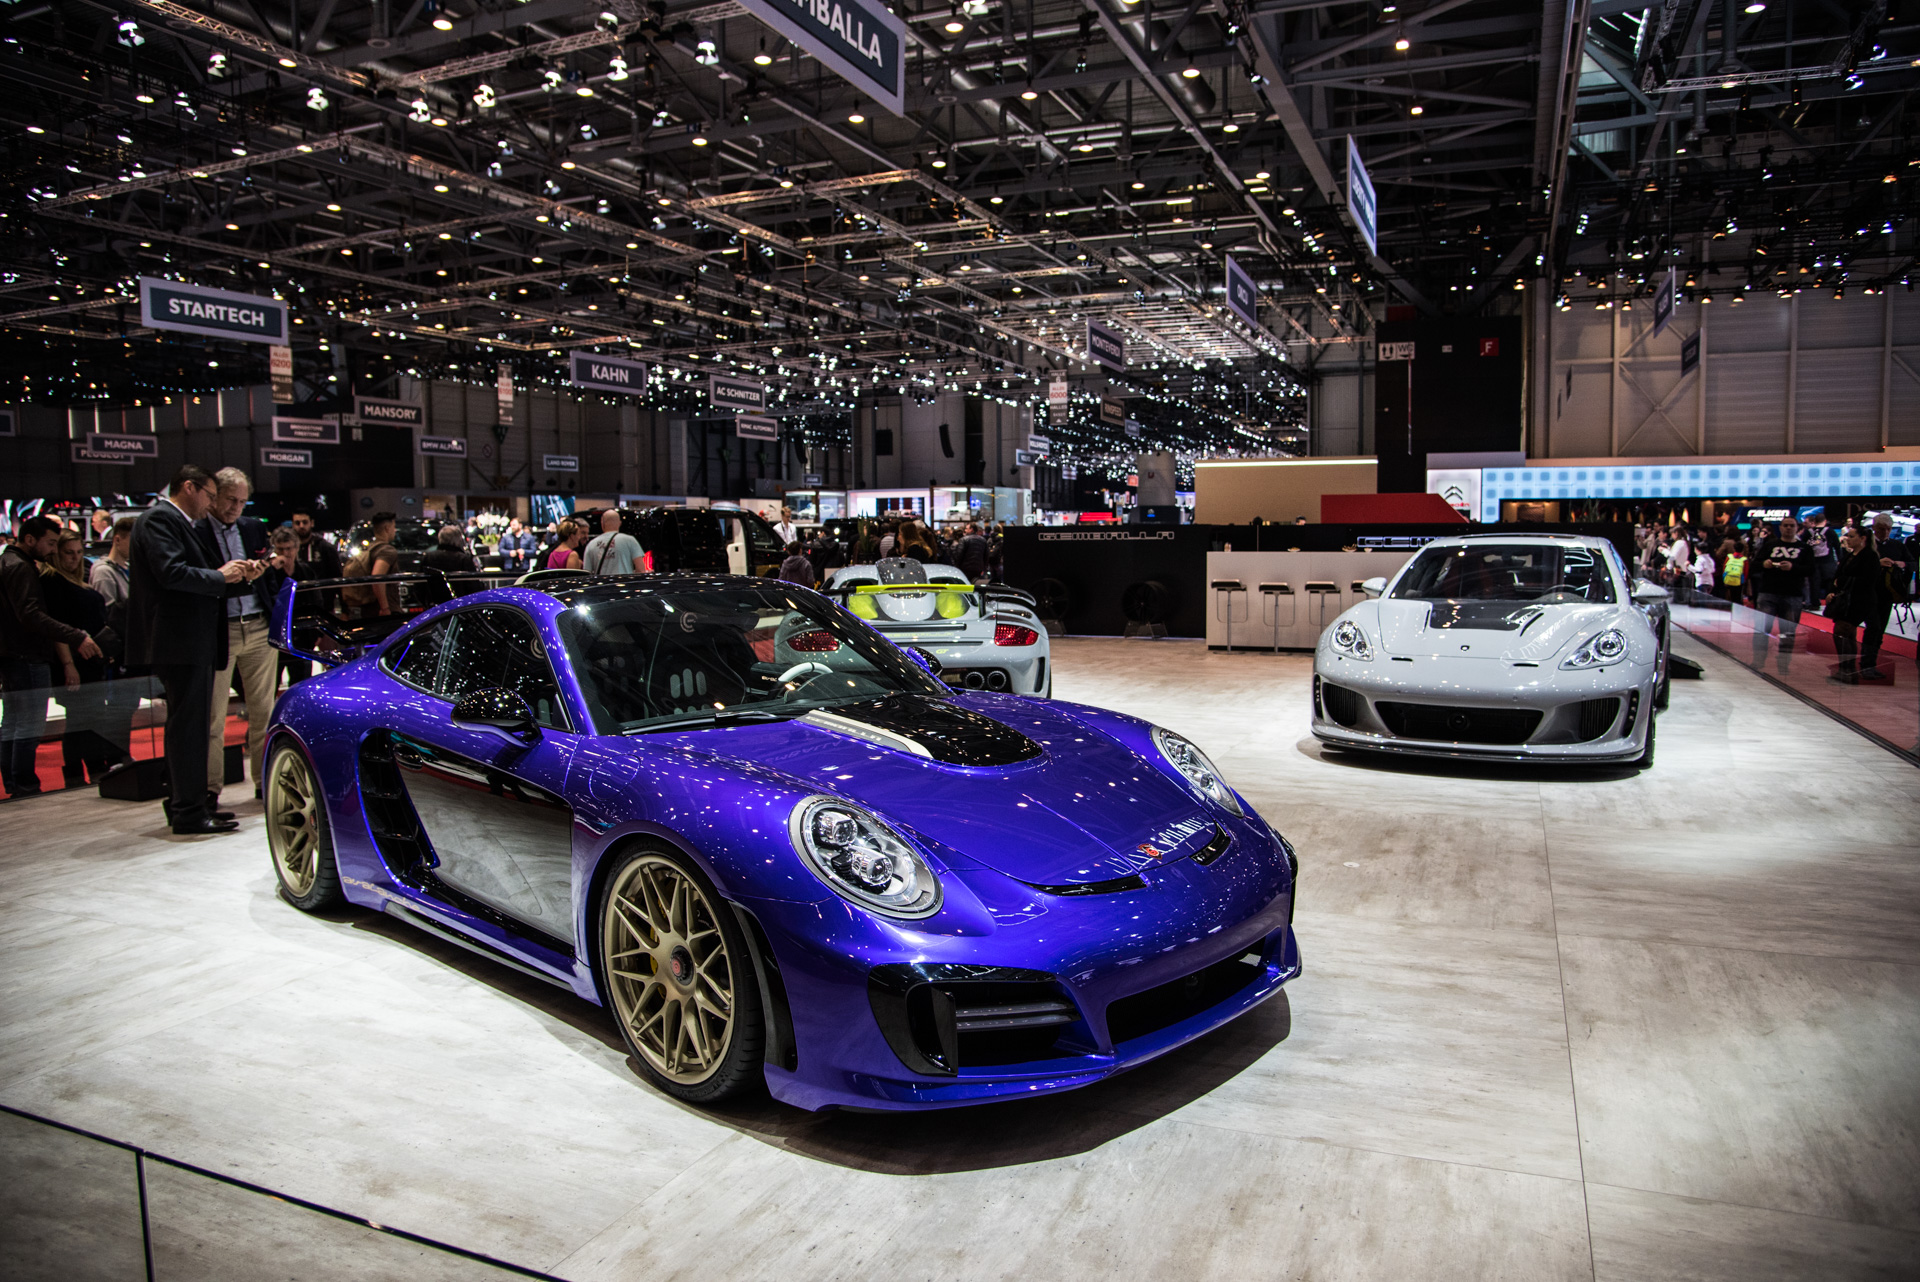 geneva-international-motor-show-igor-sinitsin-33